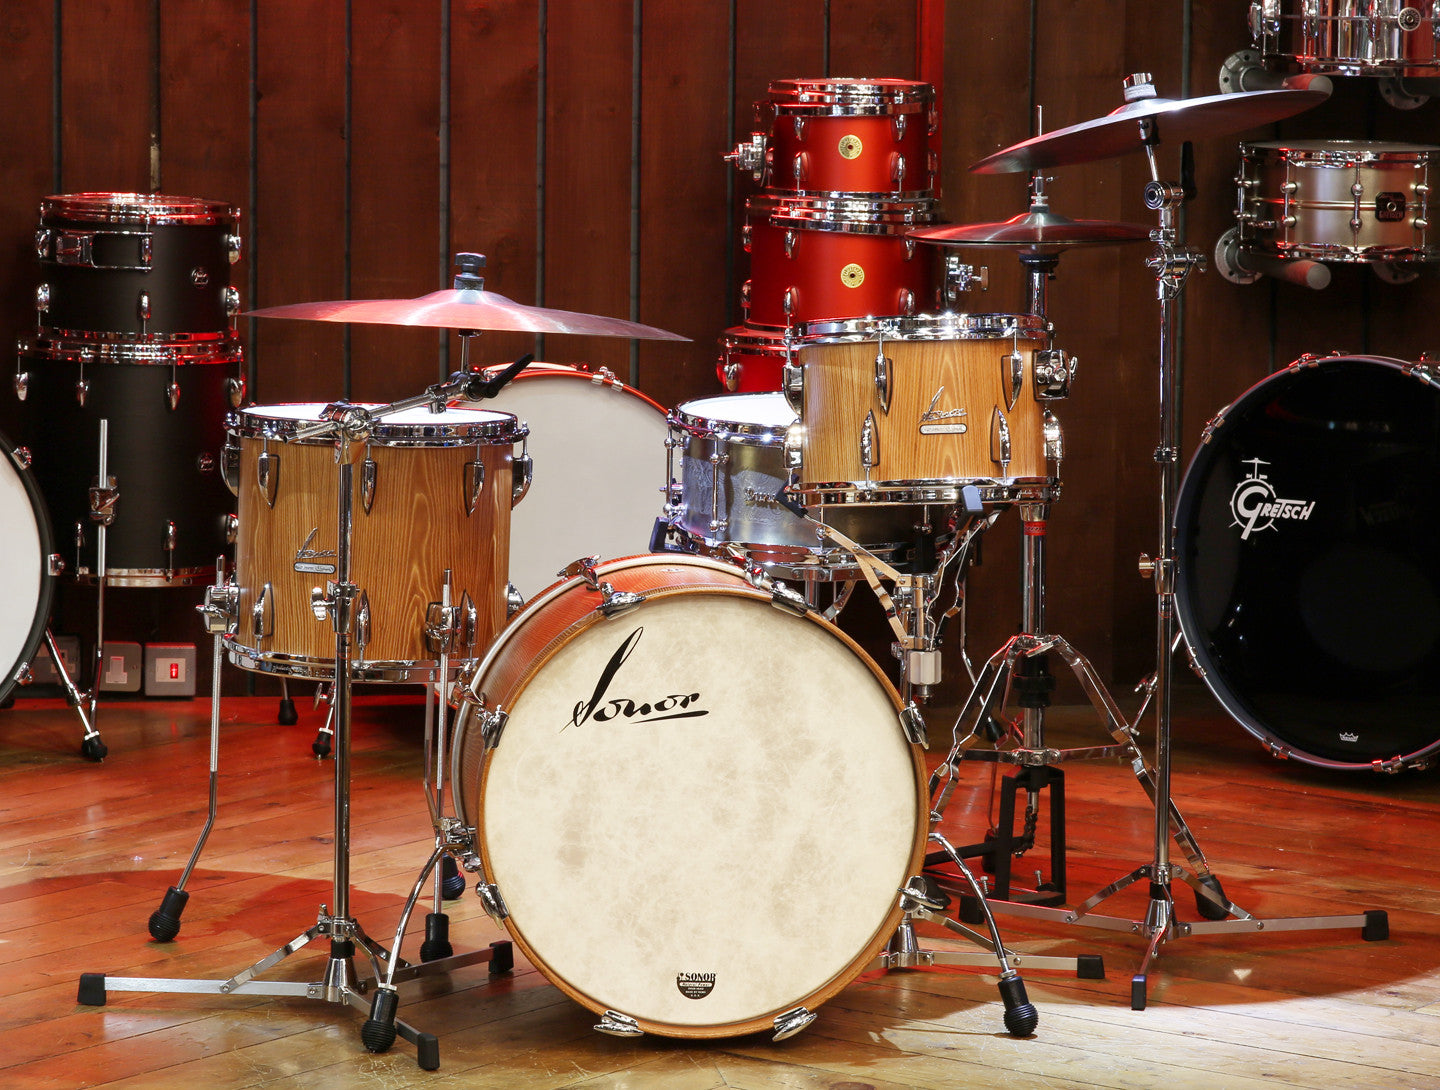 Sonor Vintage Series 4-Piece Shell Pack in Vintage Natural